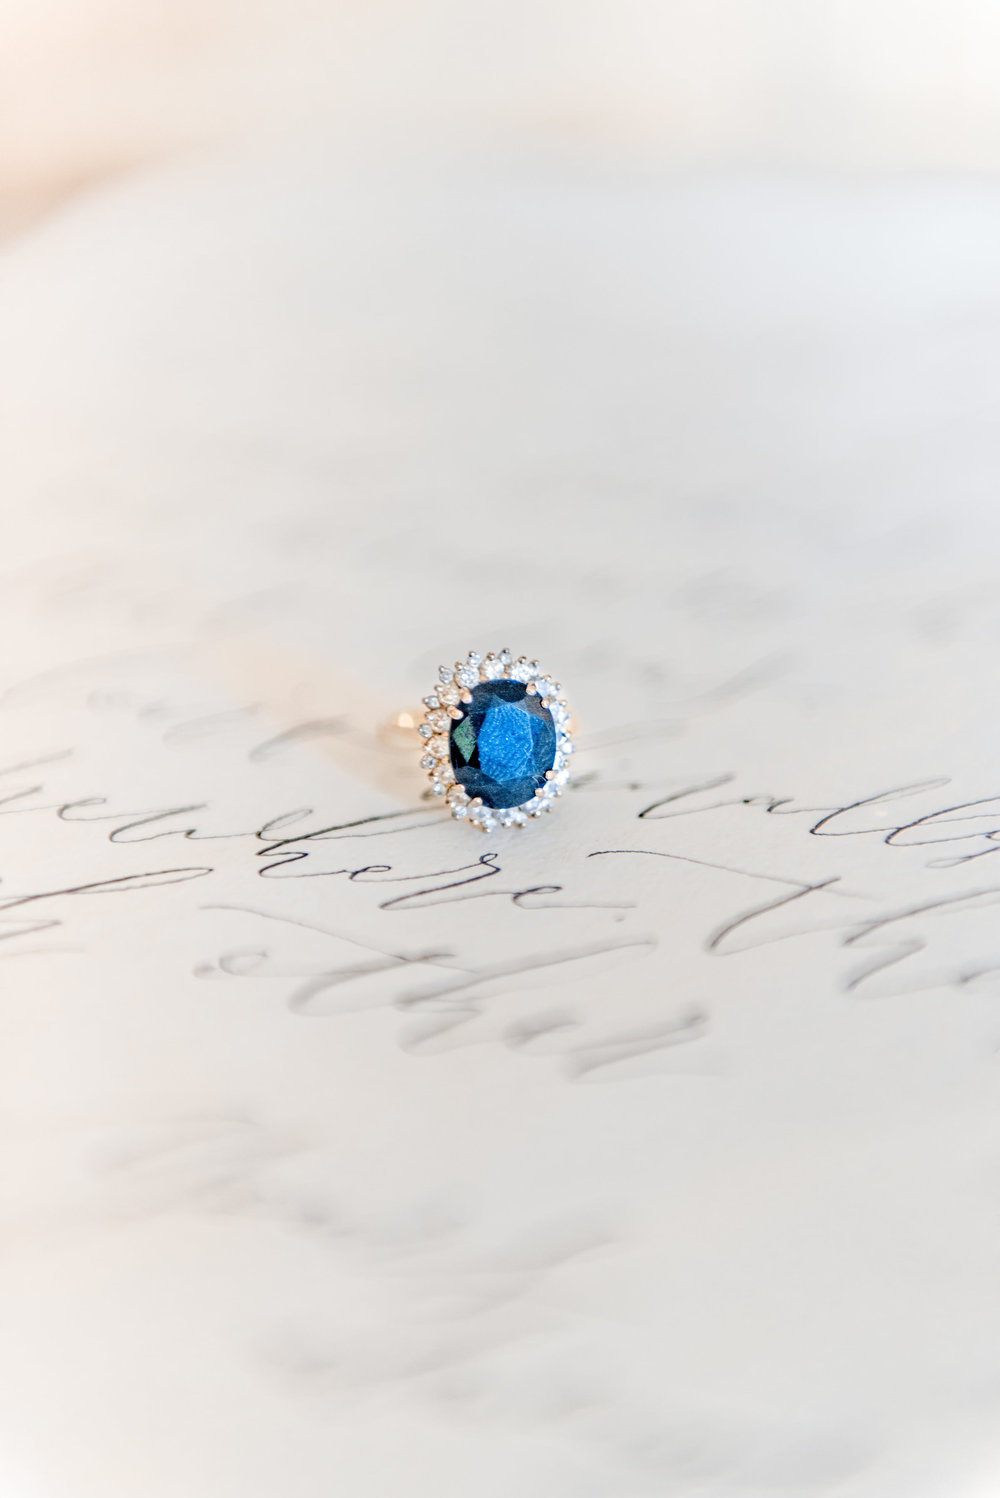 The Timeless Stylist-Elegant and Romantic Wedding Styling-Antique Engagement Ring